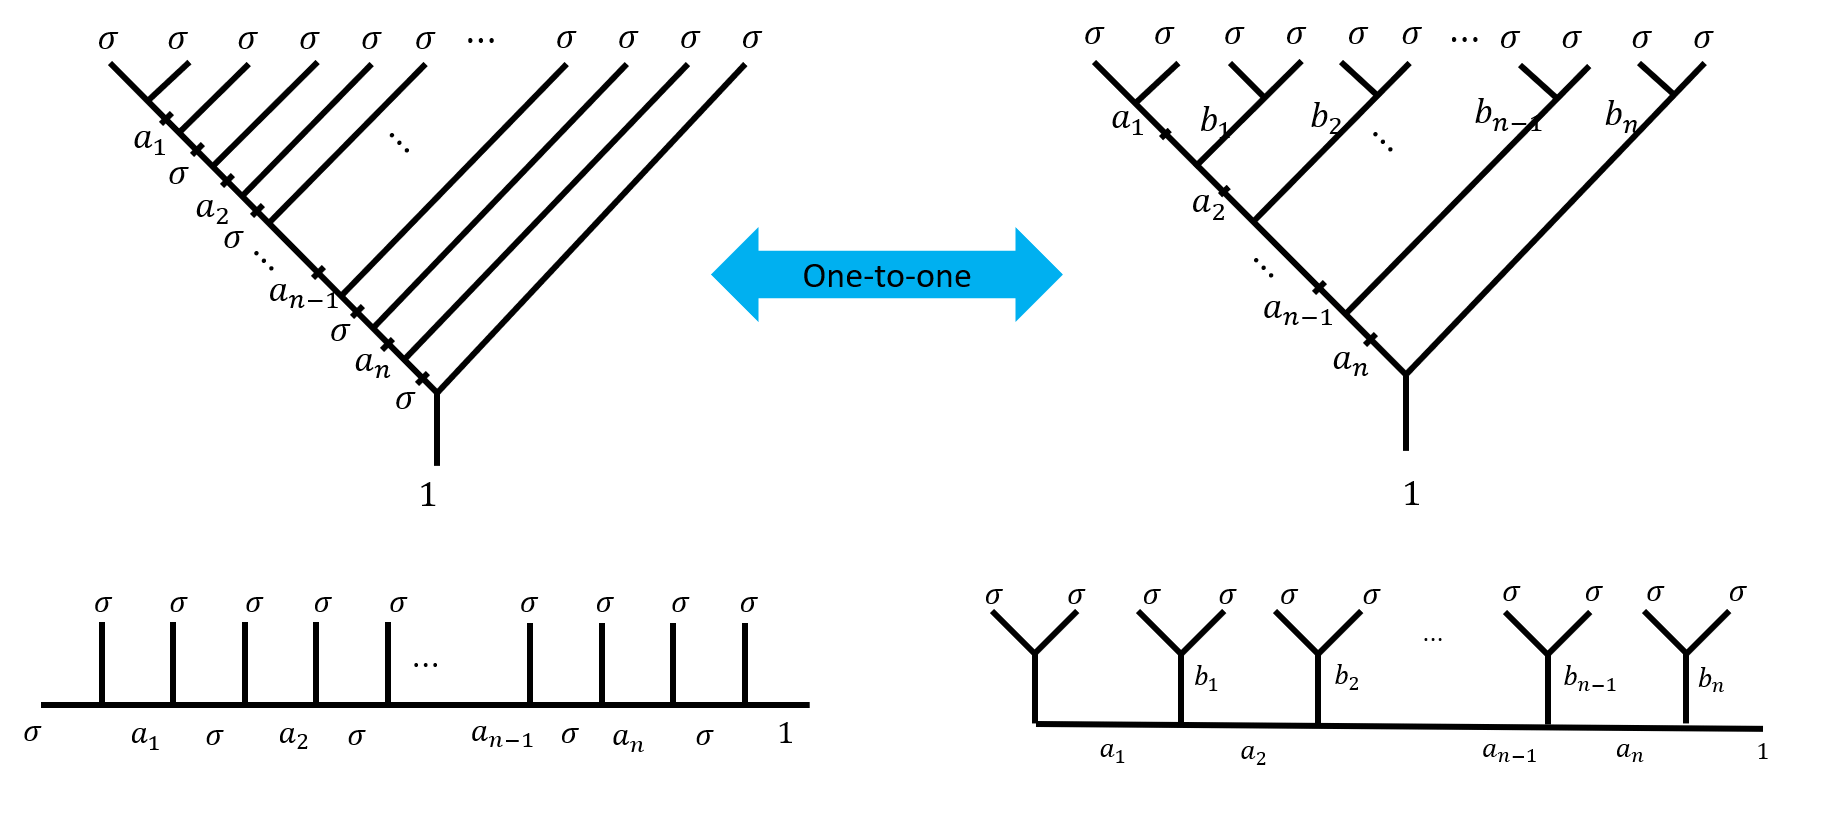 one-to-one correspondence between the canonical tree and the pairwise tree